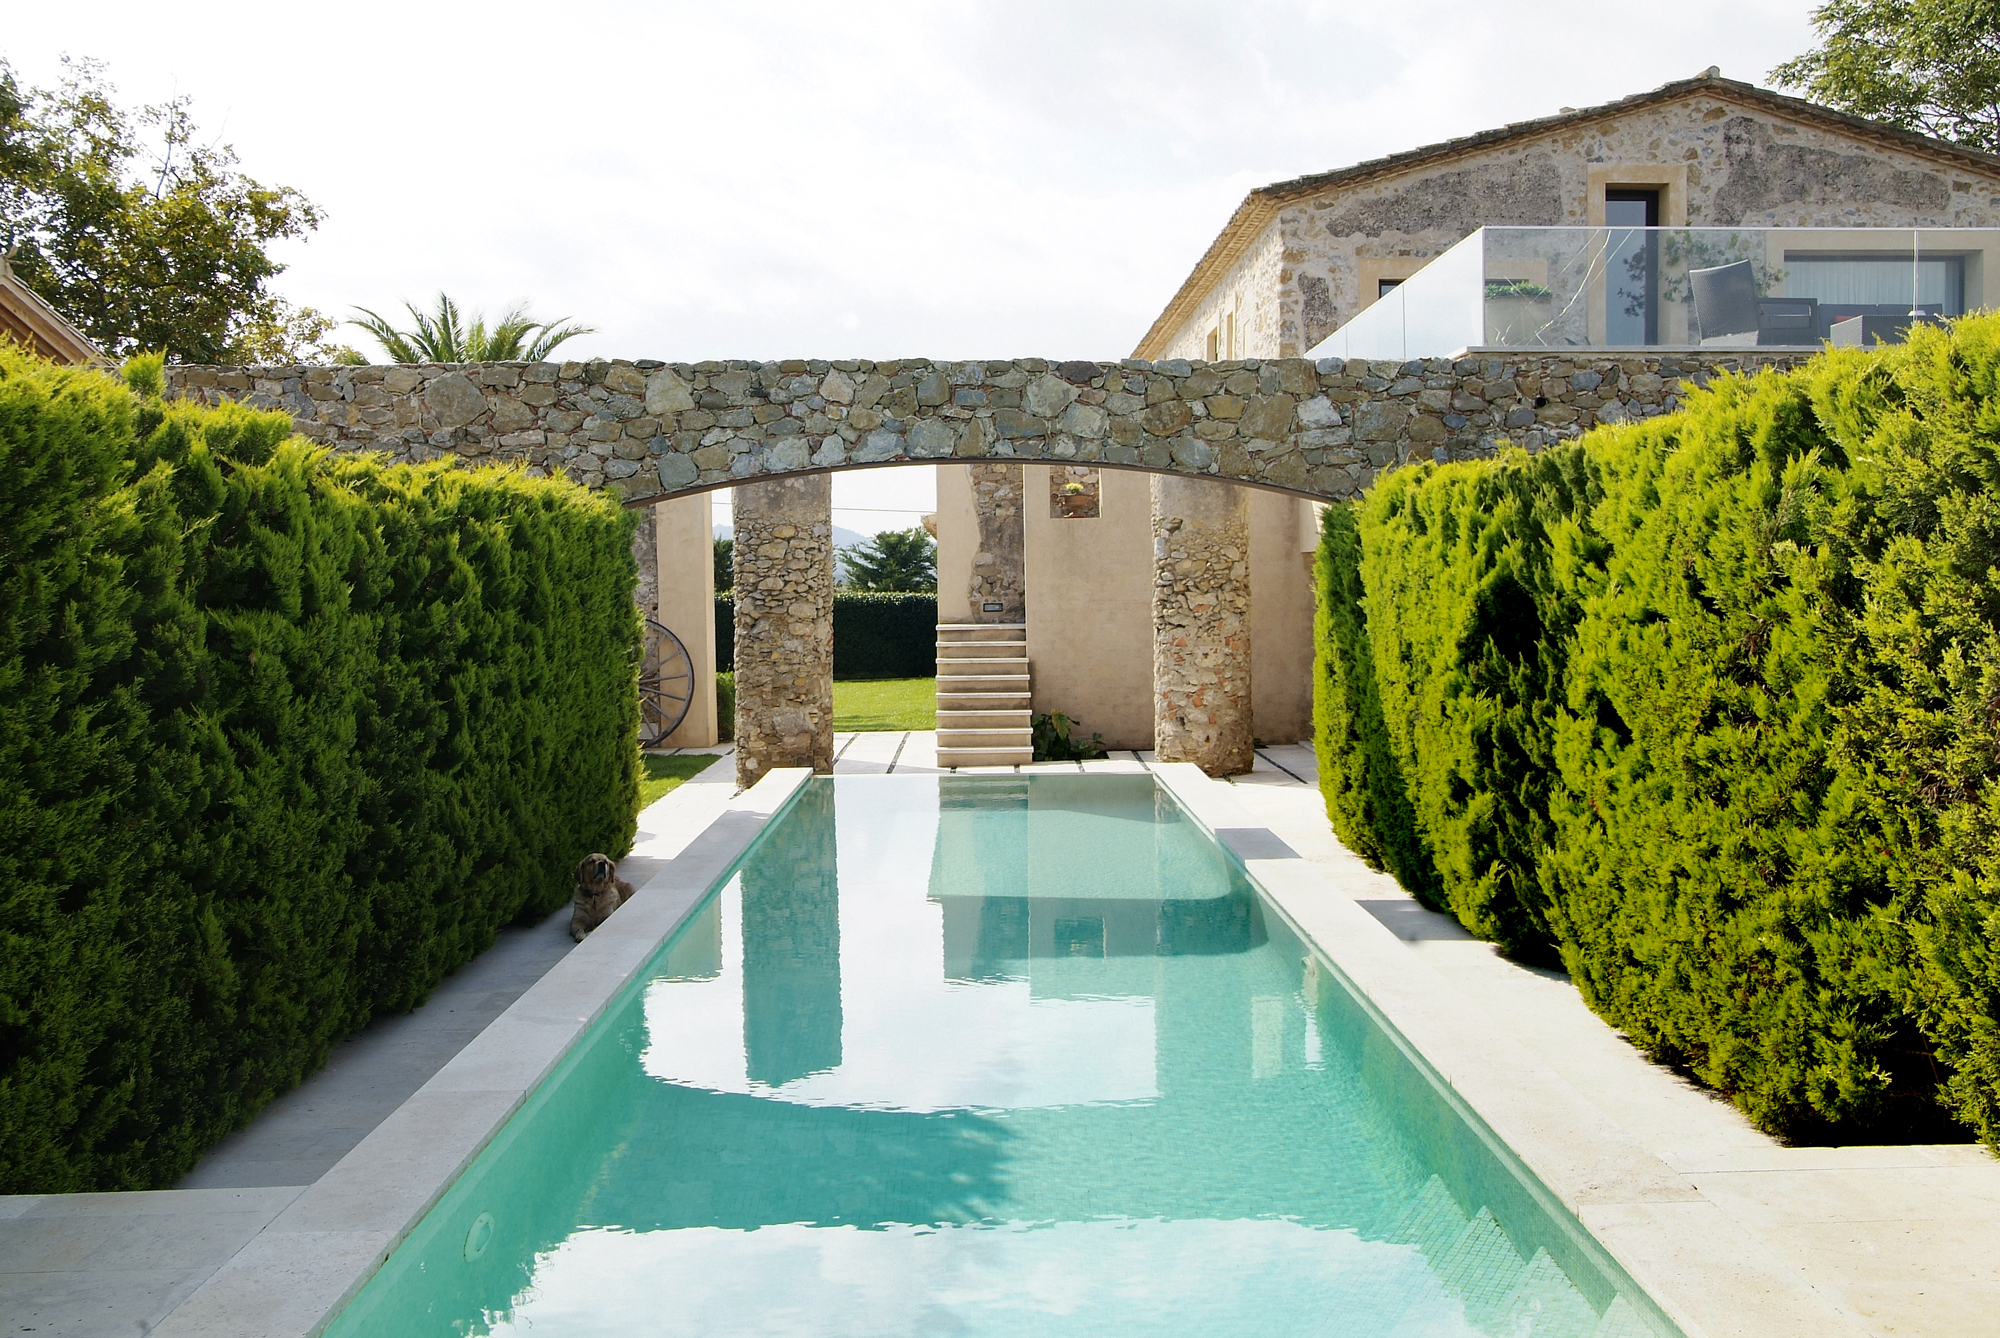 Moradia para Venda às Extraordinary and exquisite country farm house Other Cities Baix Emporda, Barcelona, 17001 Espanha